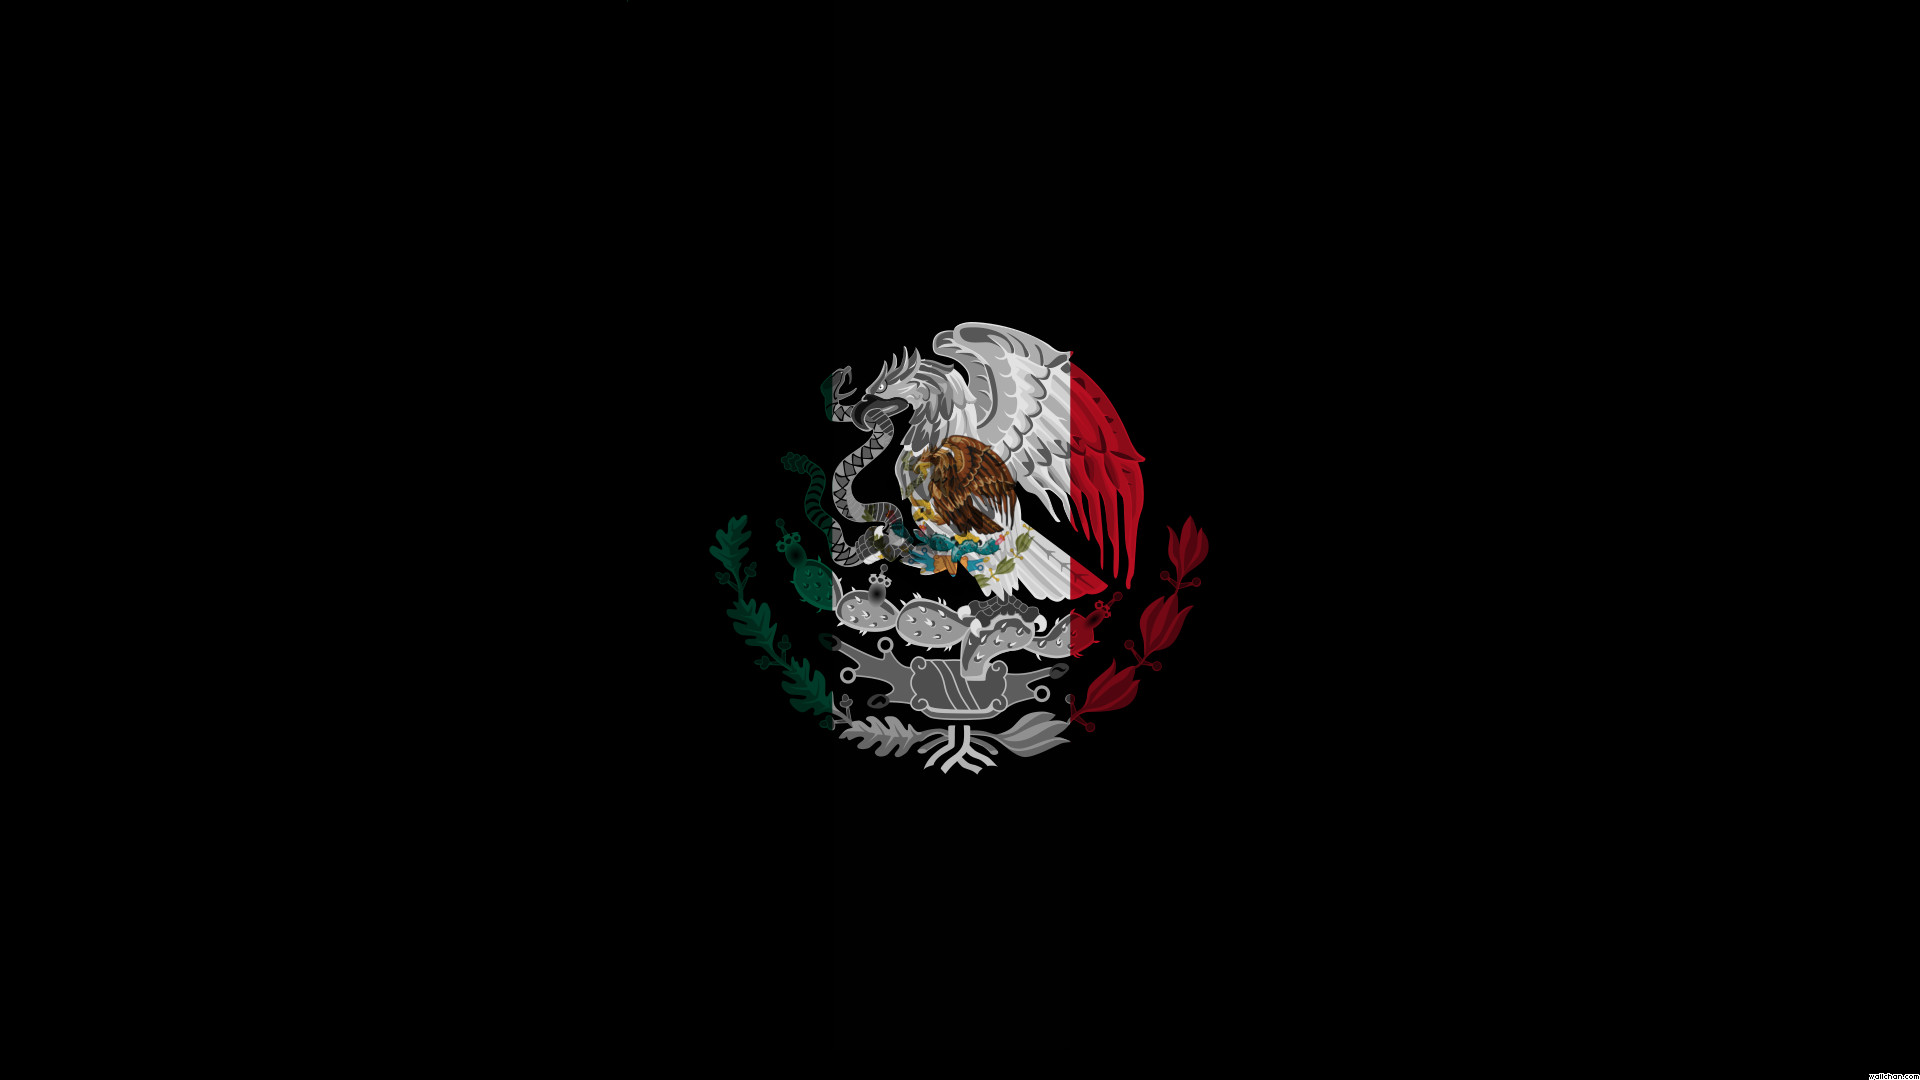 1920x1080 Cool Mexico Flag Wallpaper